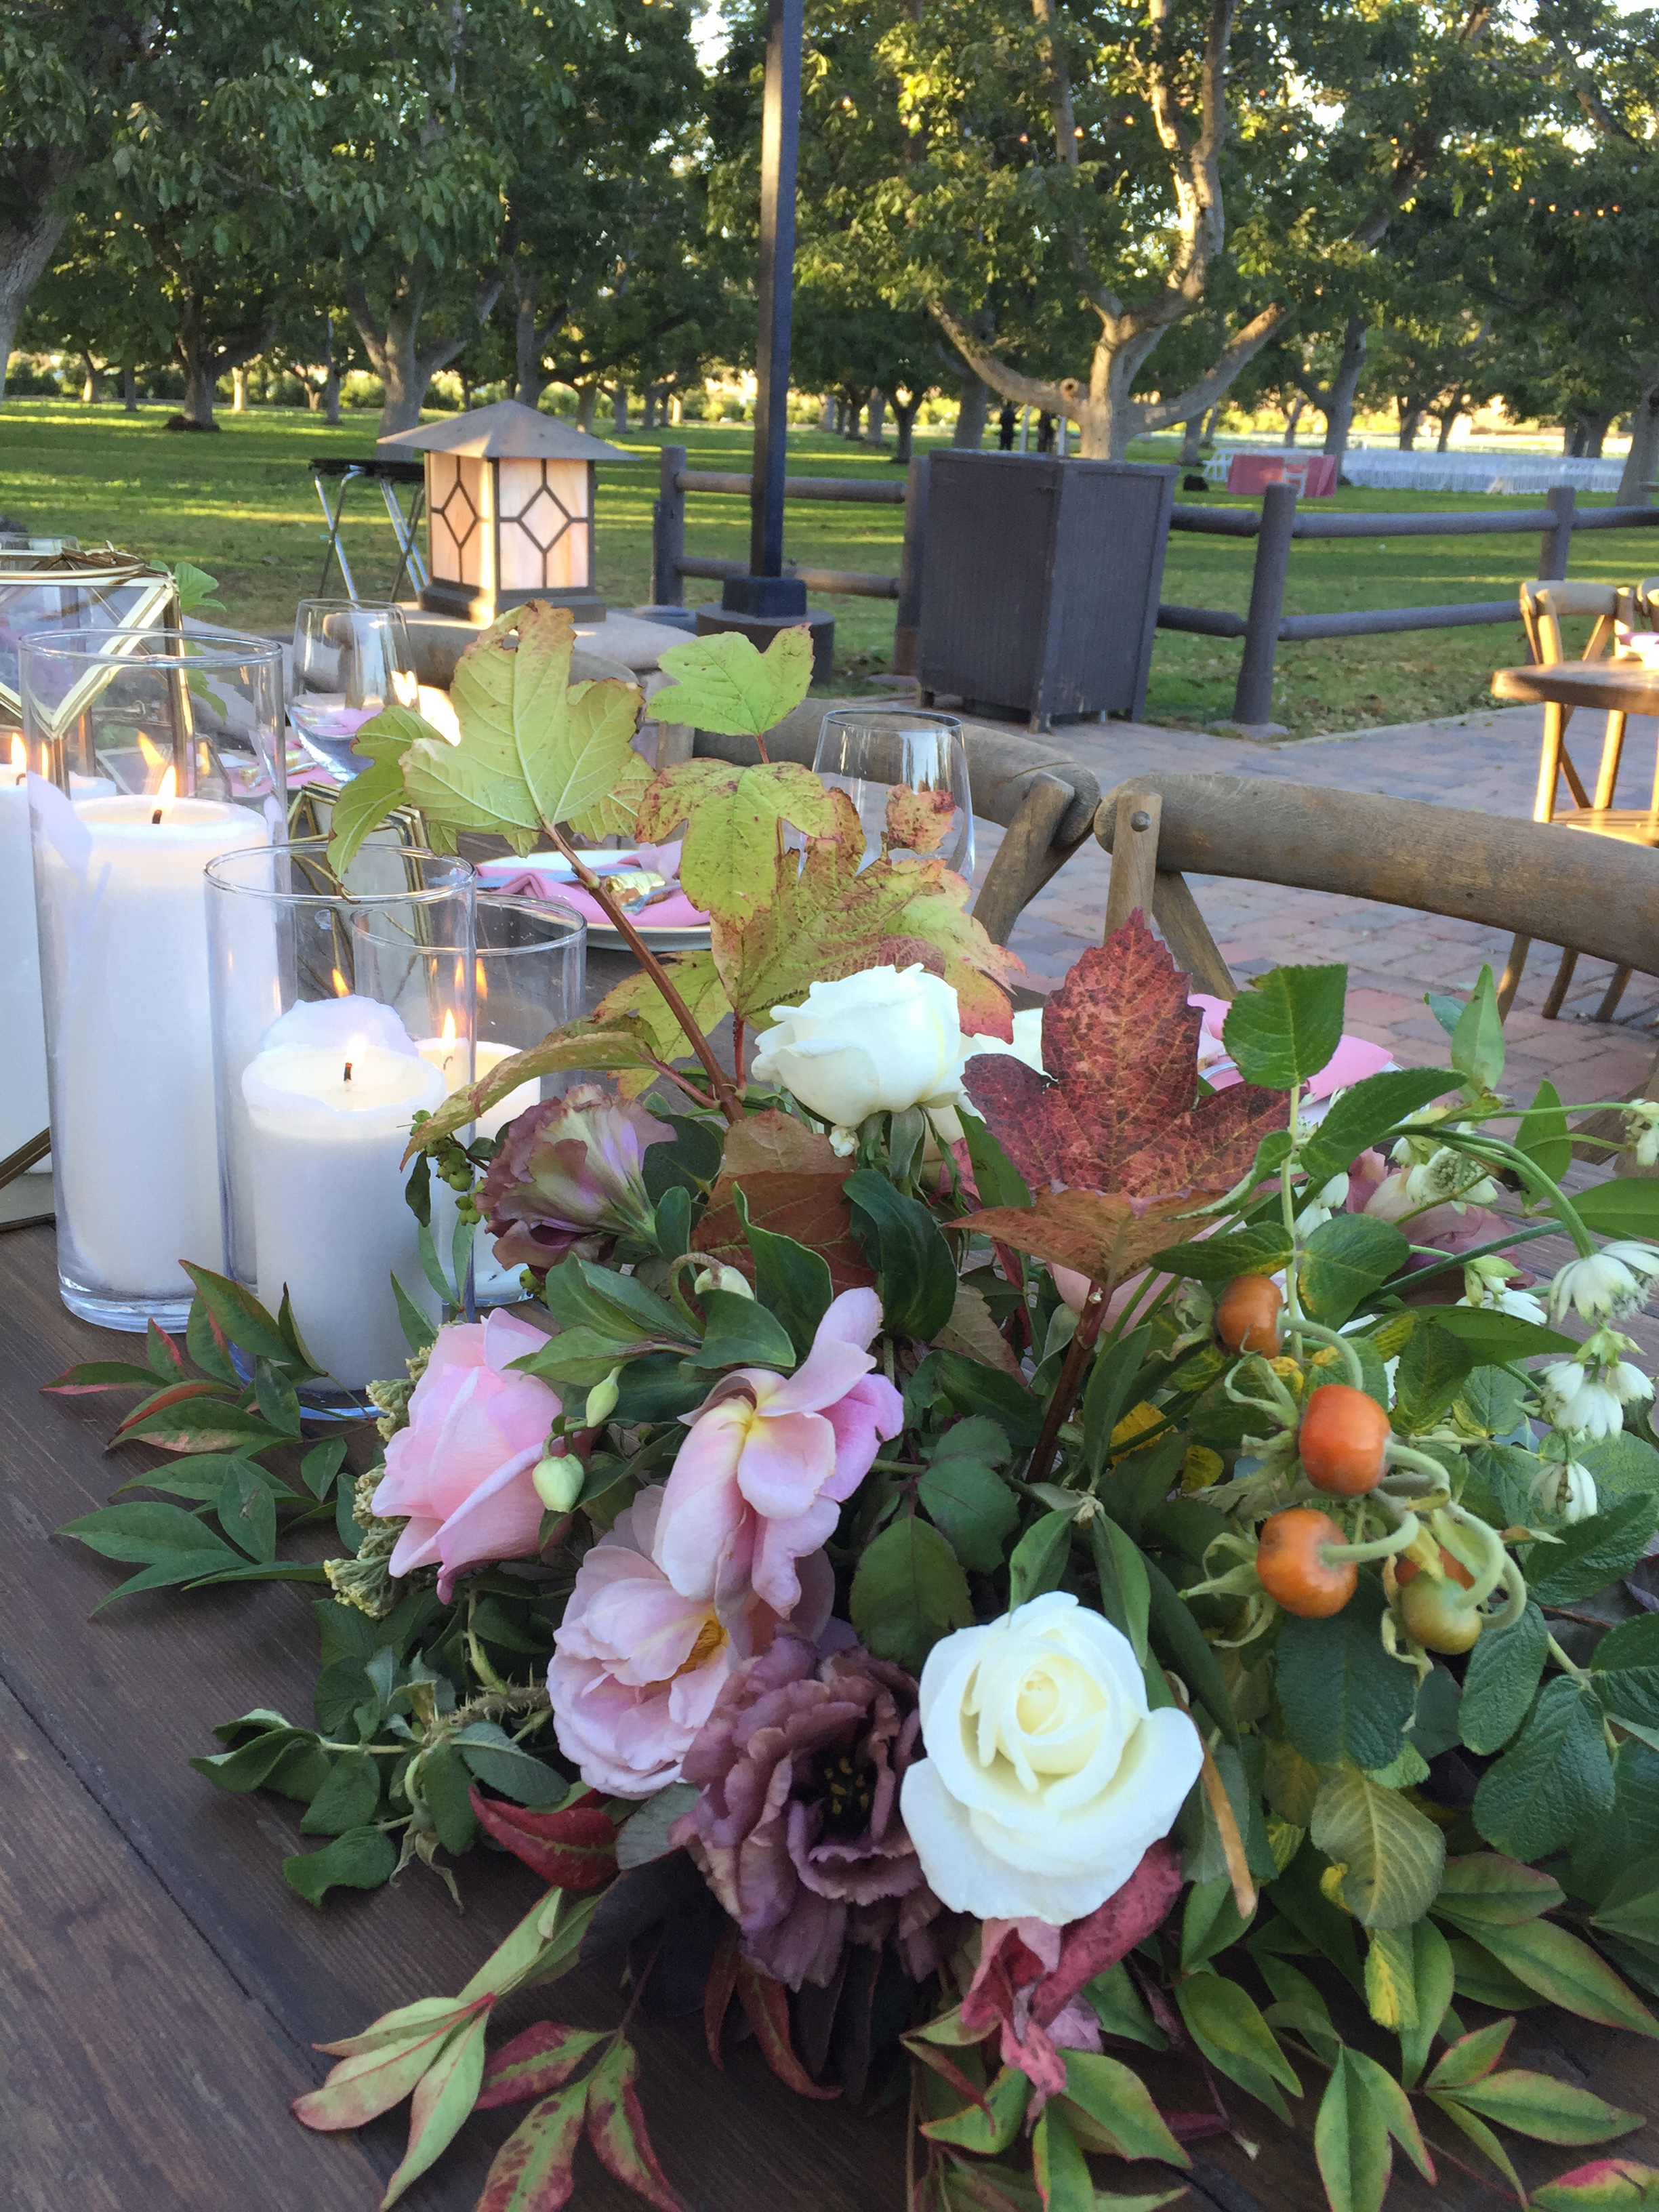 17.10.22 - Bittner Kunstt Wedding - Table Close-up